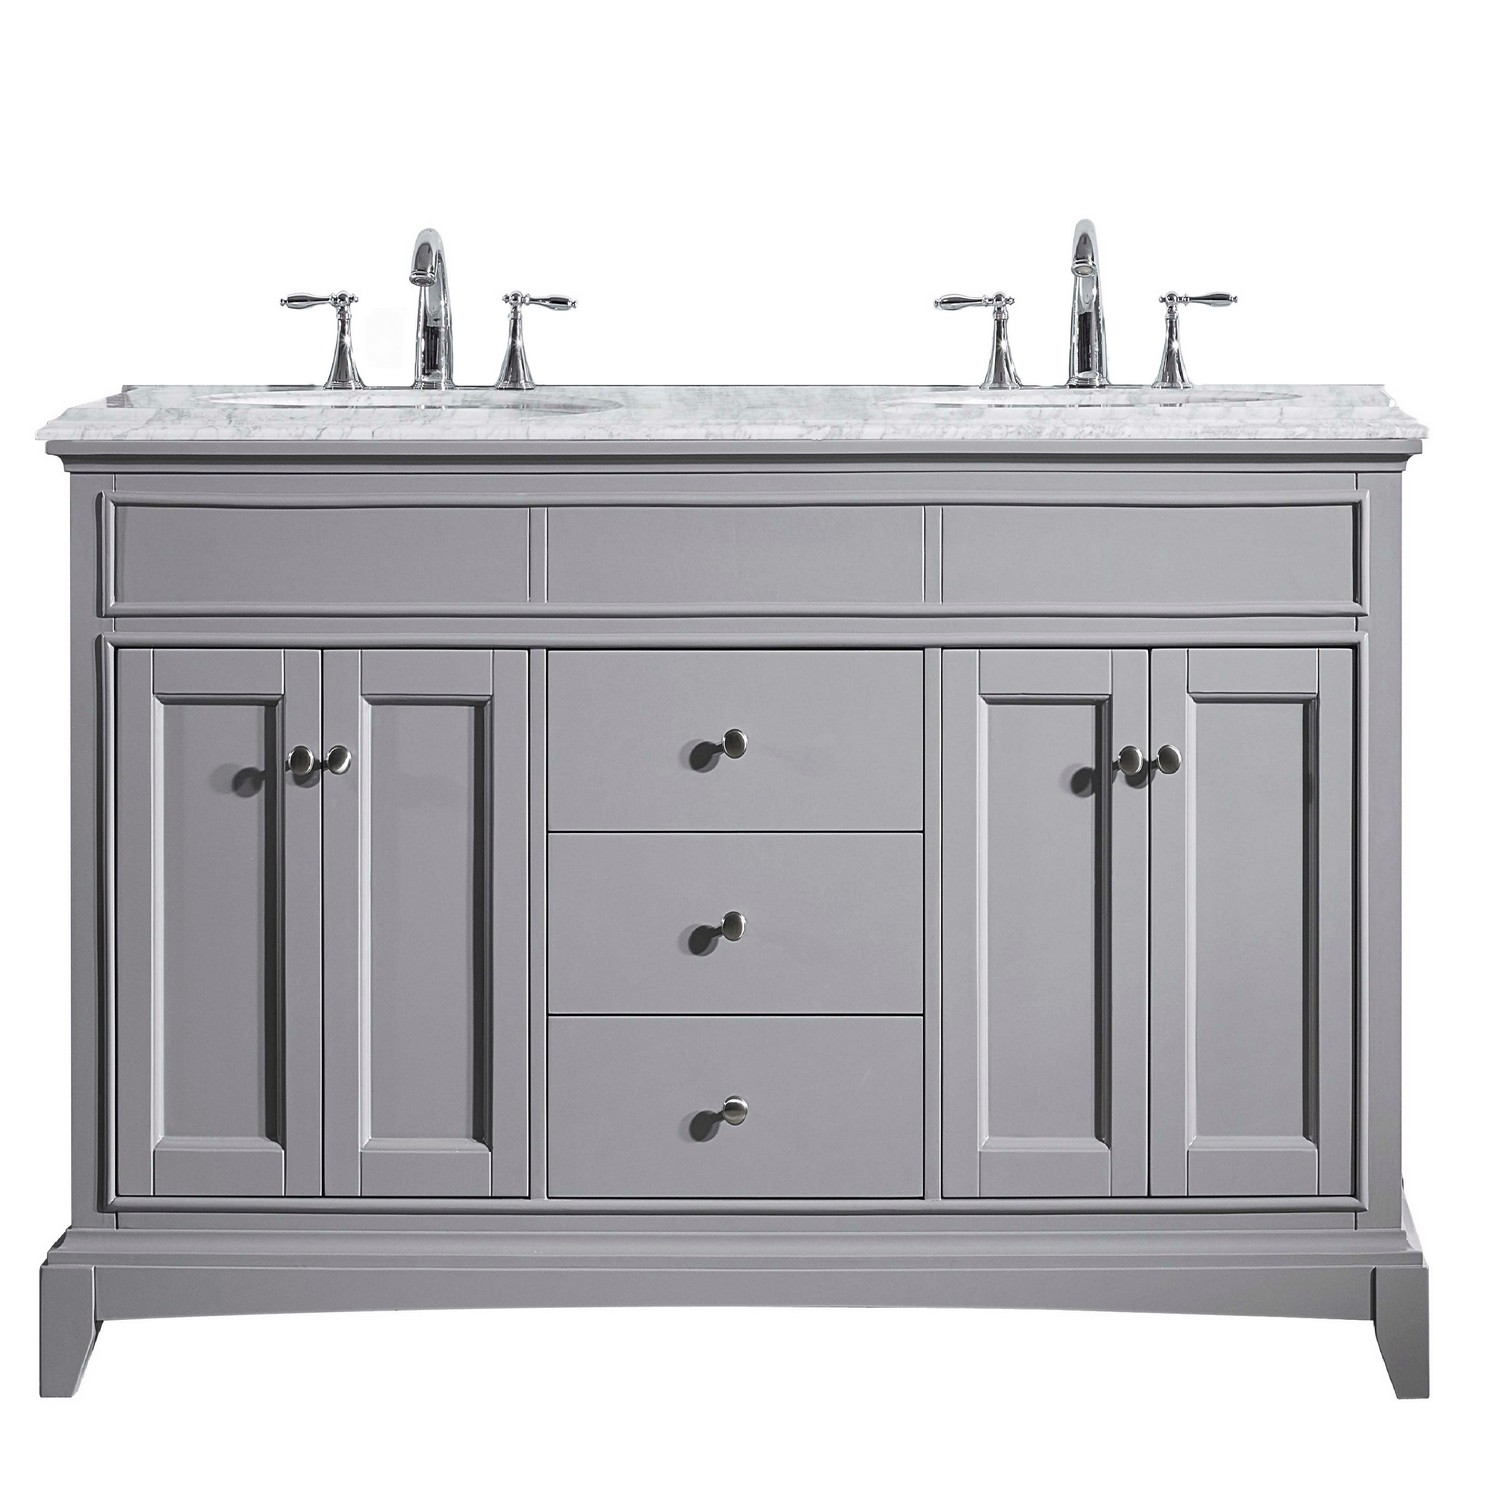 Eviva elite stamford 72 gray solid wood bathroom vanity set for Solid wood double sink bathroom vanity